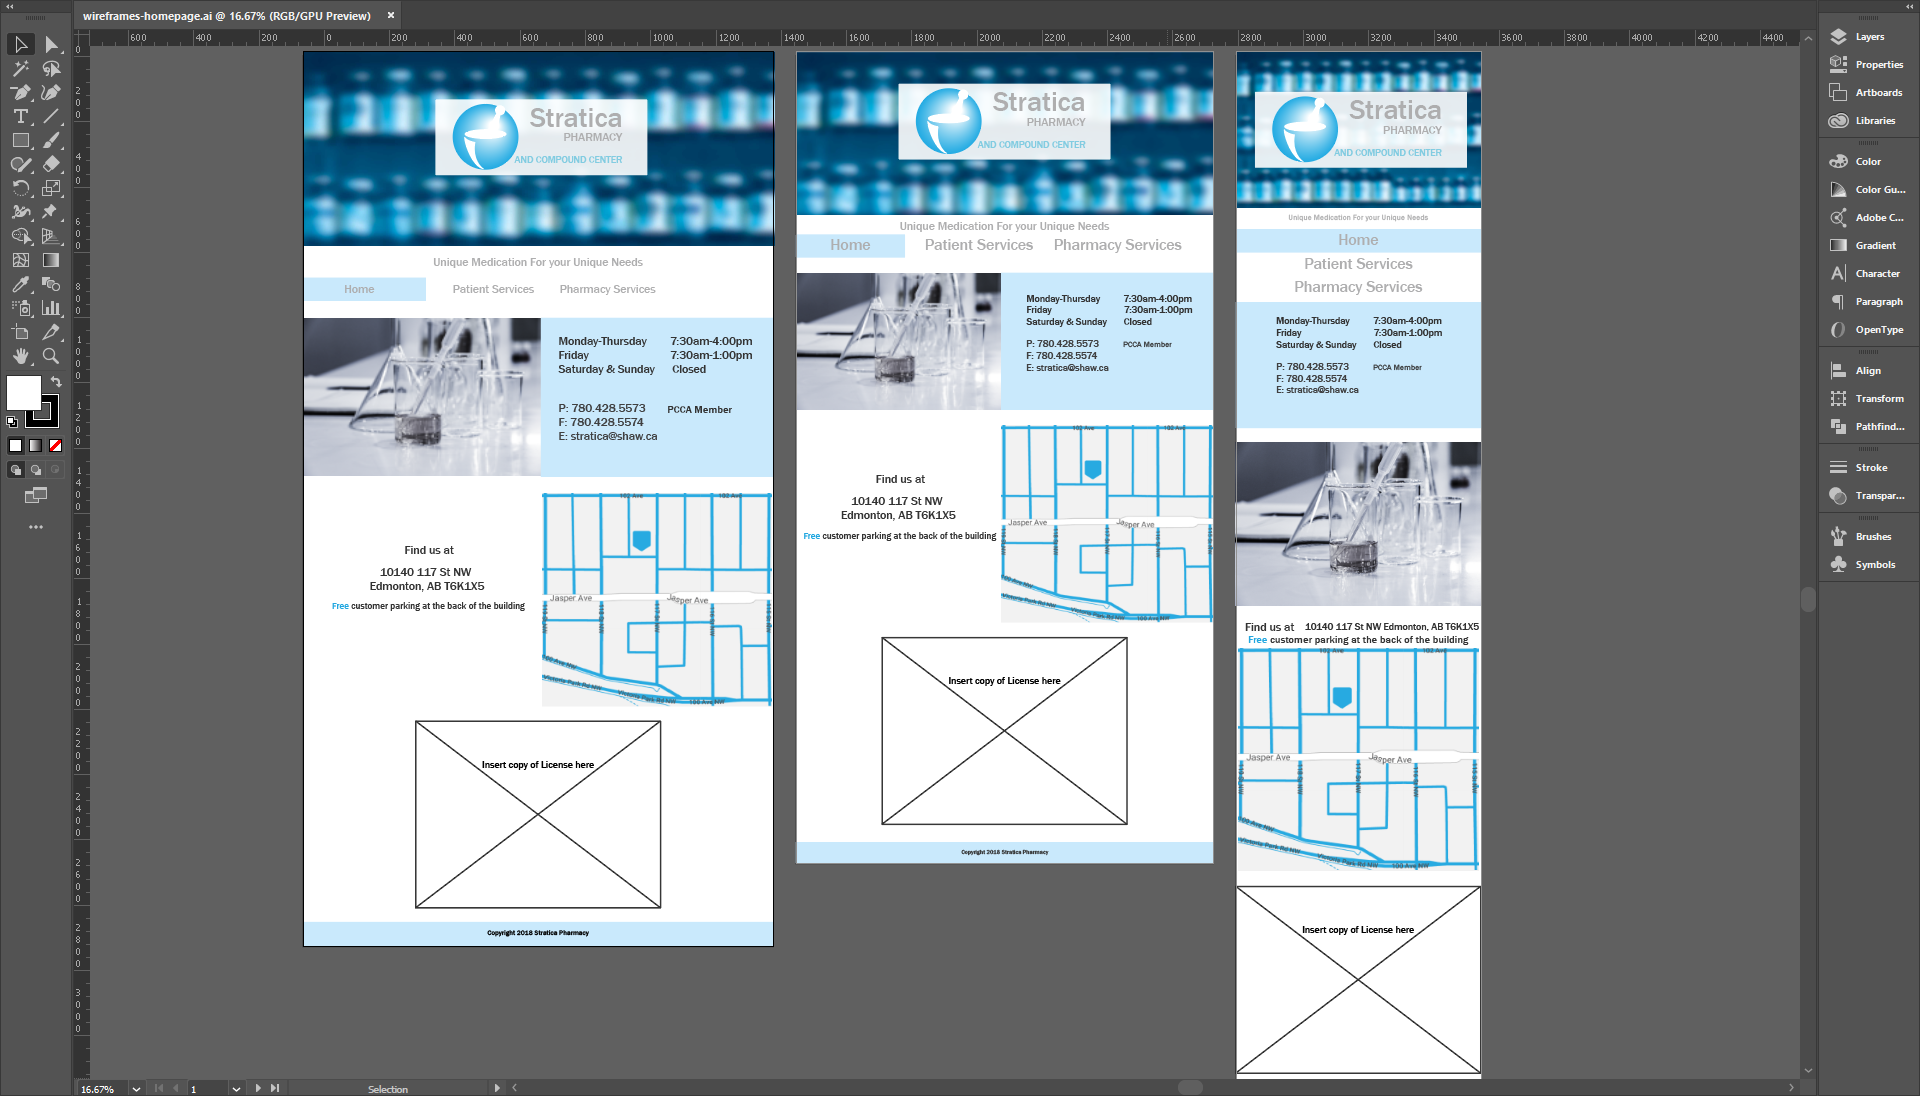 A screenshot of high level wireframes in Adobe Illustrator